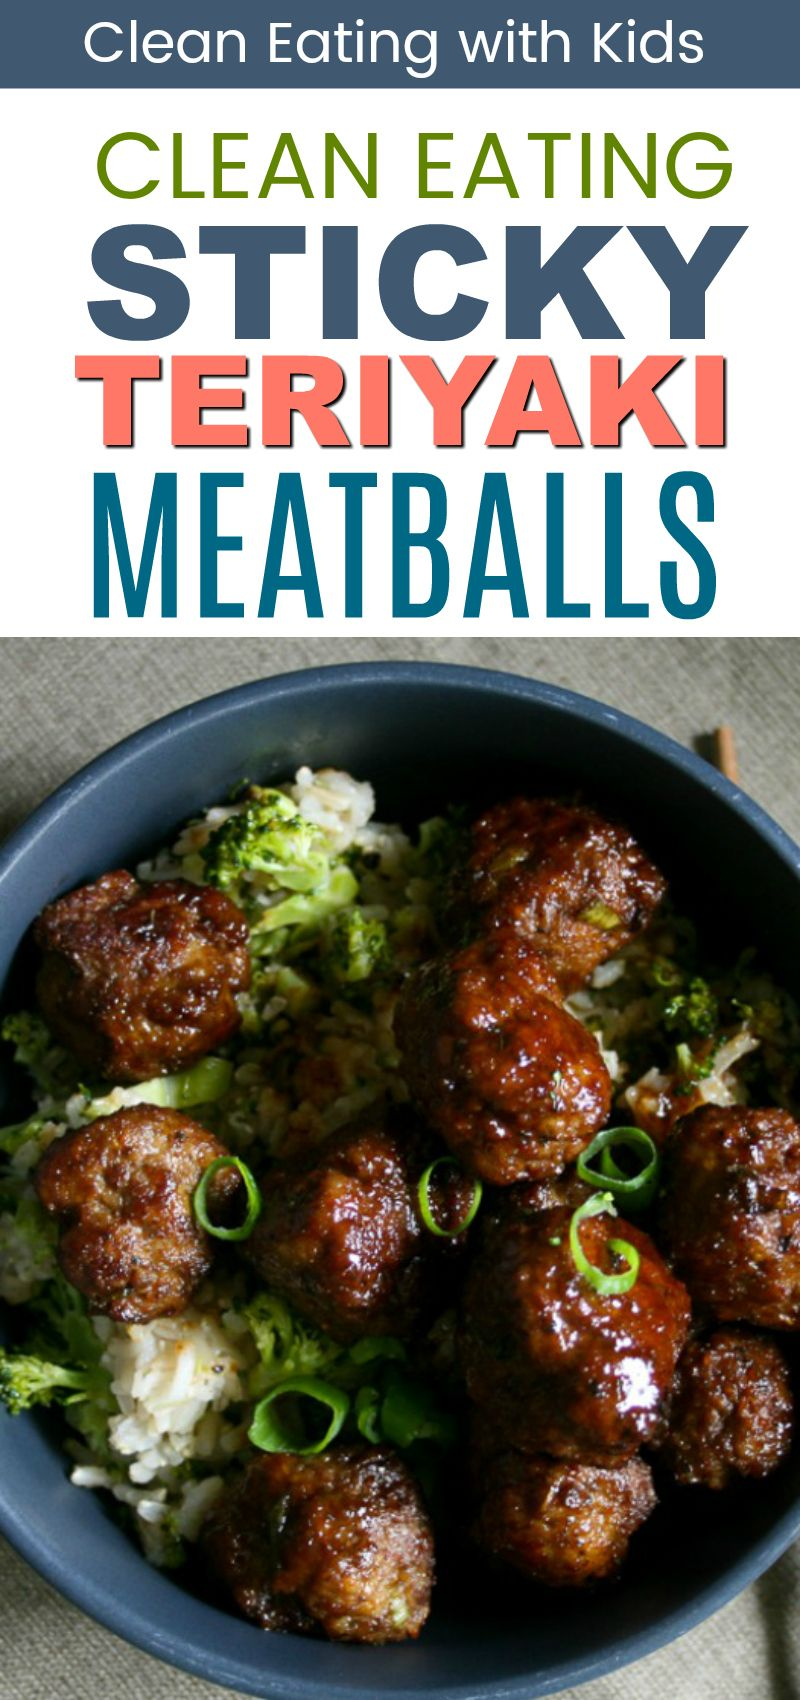 Sweet & Sticky Teriyaki Meatballs with Broccoli Fried Rice - Clean Eating with kids